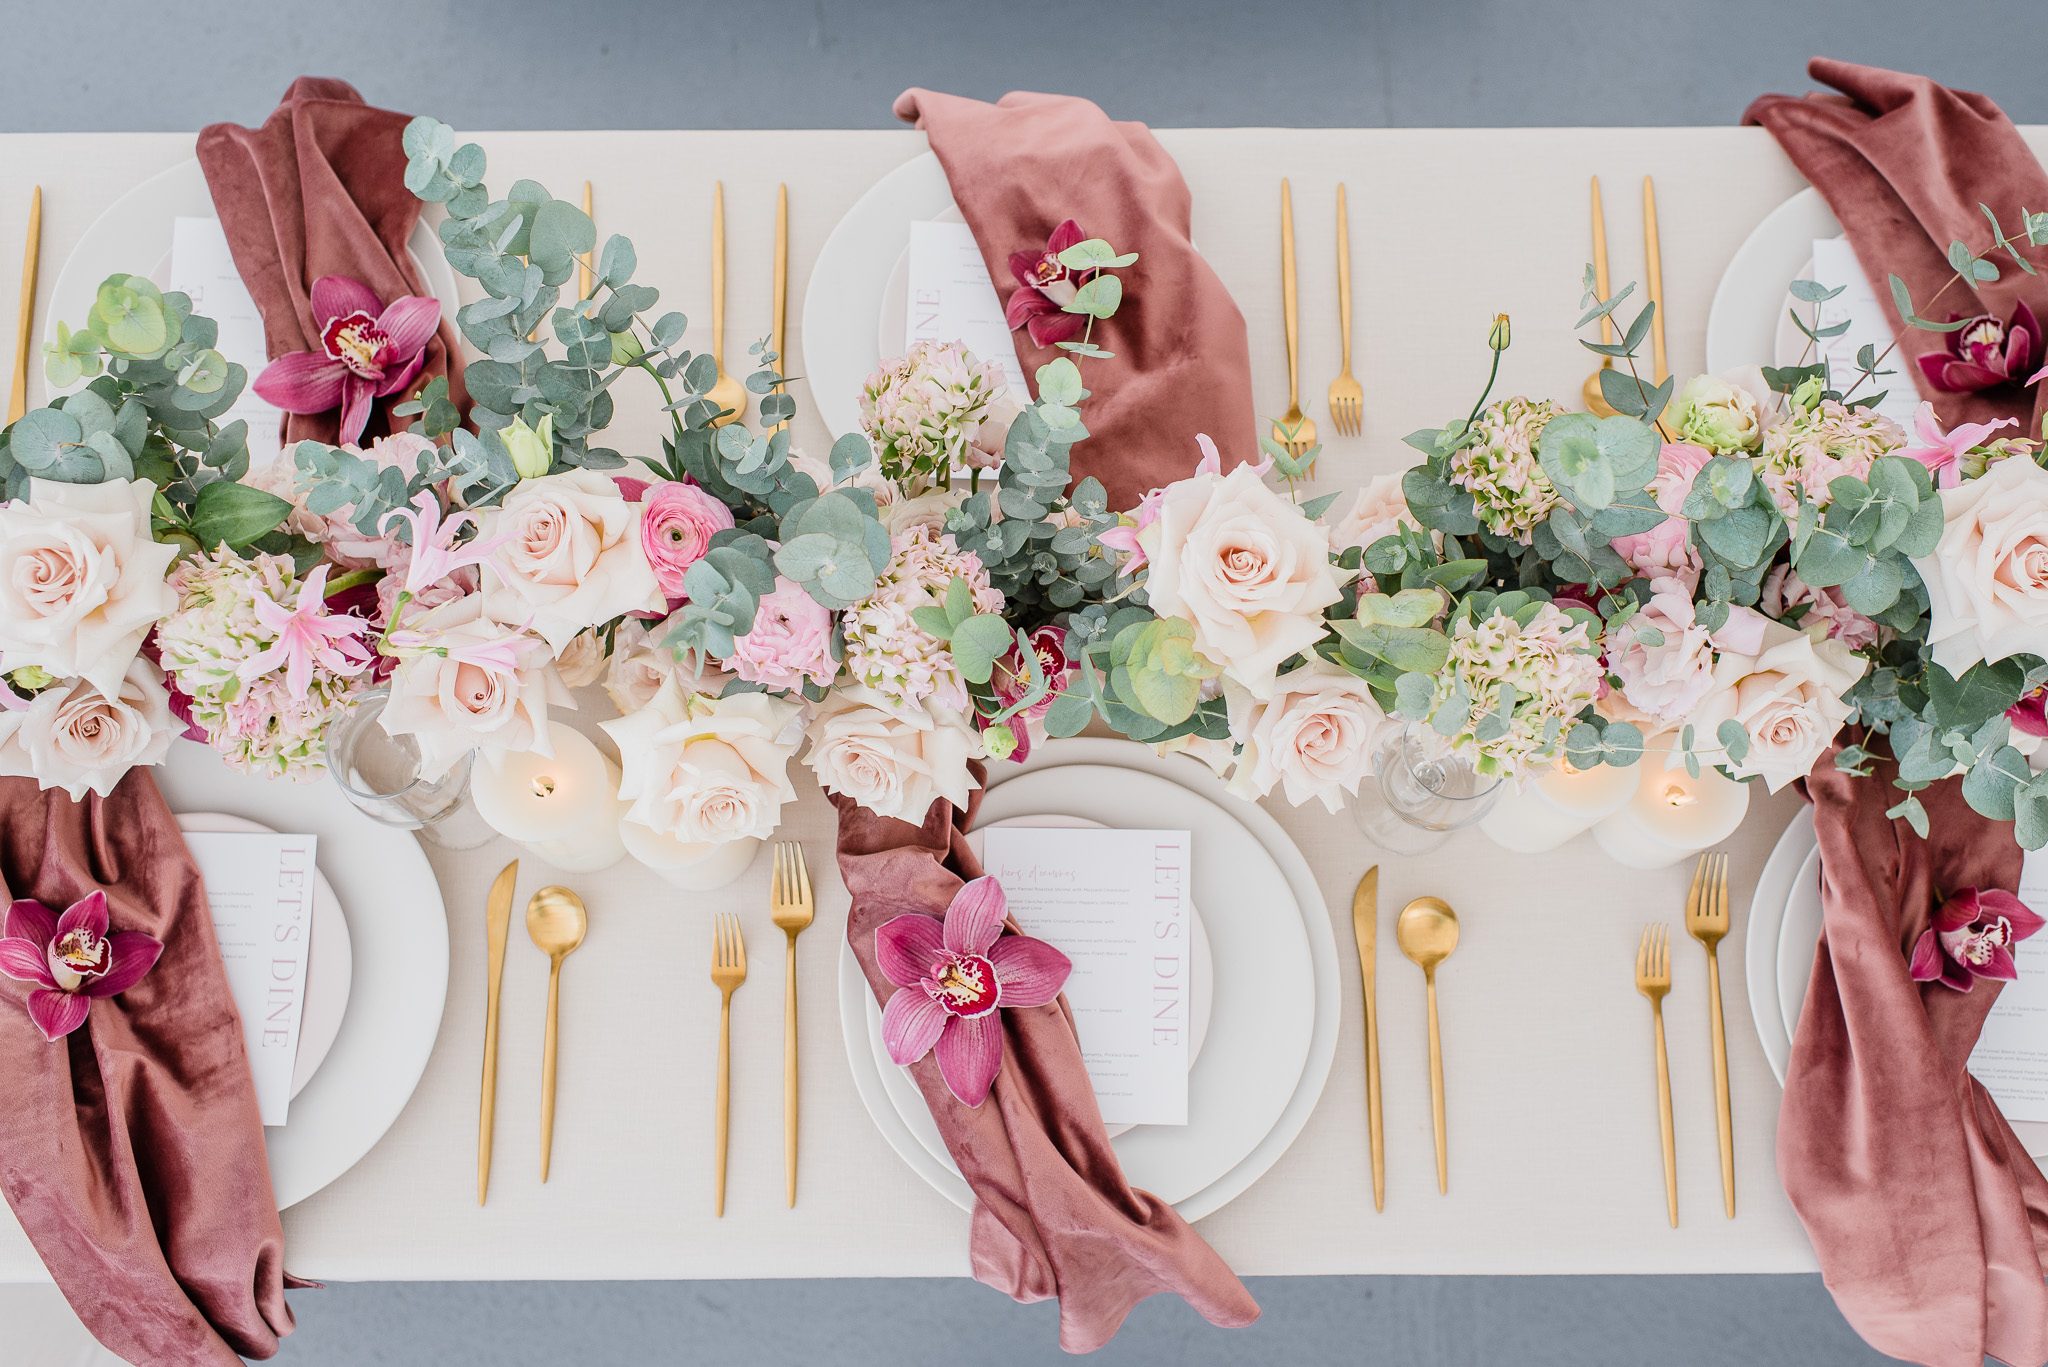 Velvet Napkins courtesy of Simply Beautiful Decor | Jenn Kavanagh Photography